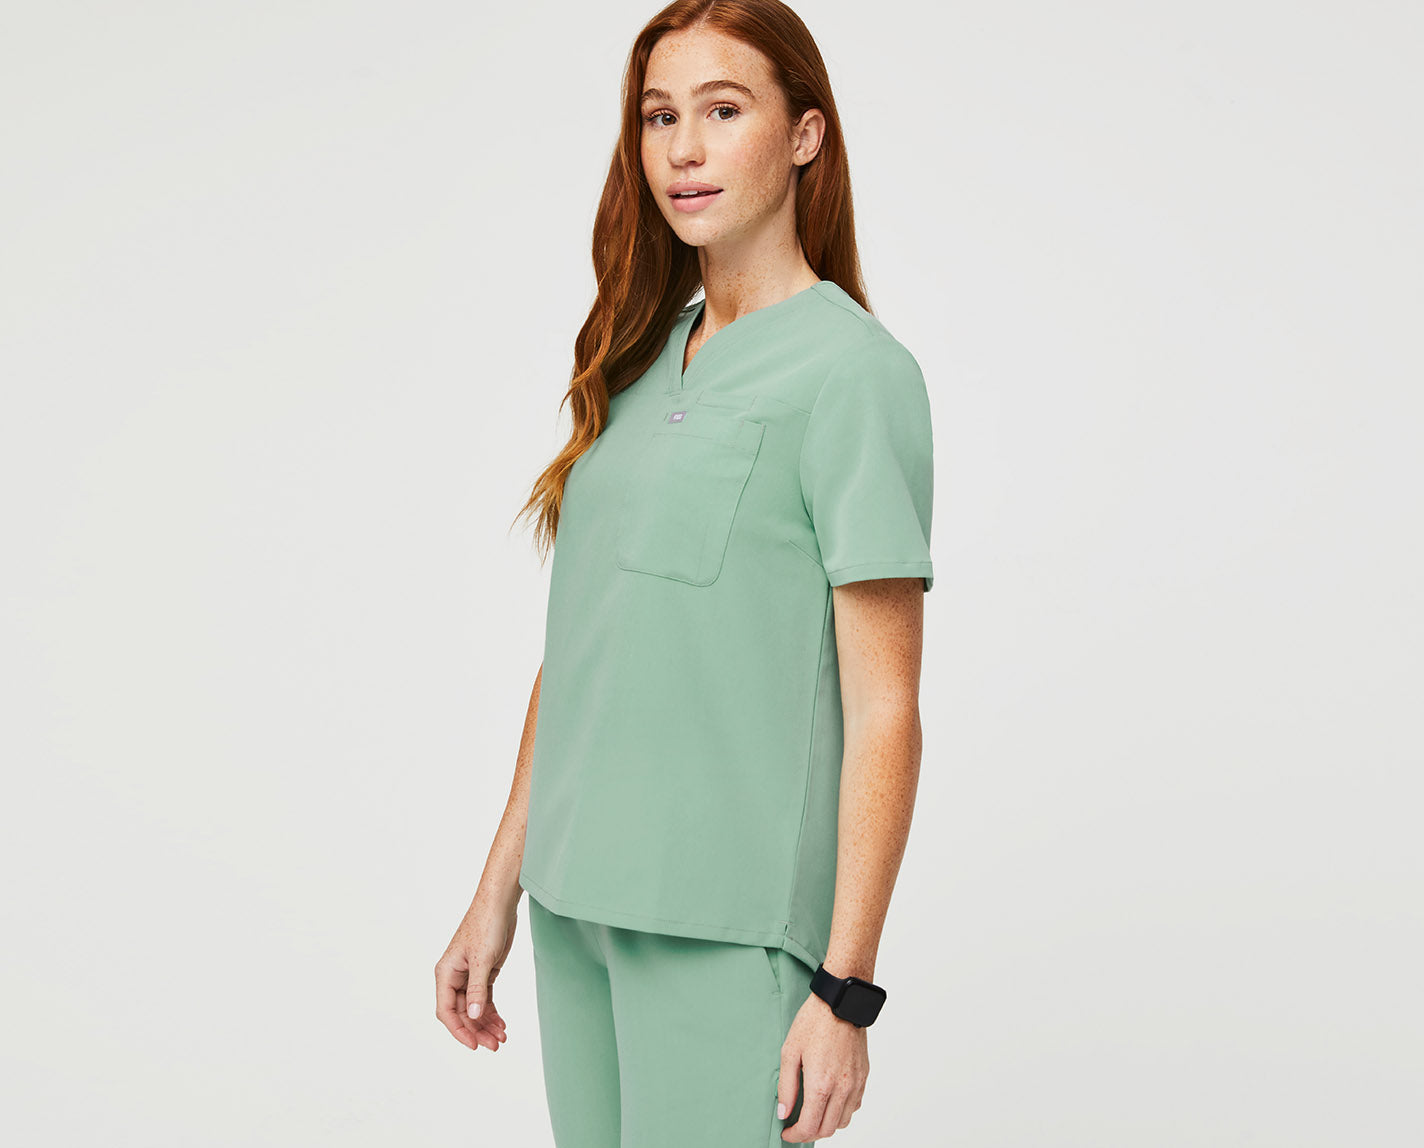 This classic fit V-neck is all about style and utility. With a total of 3 pockets, it has everything you need for a busy day on shift. It is made with our proprietary FIONx fabric and available just in time for this summer.